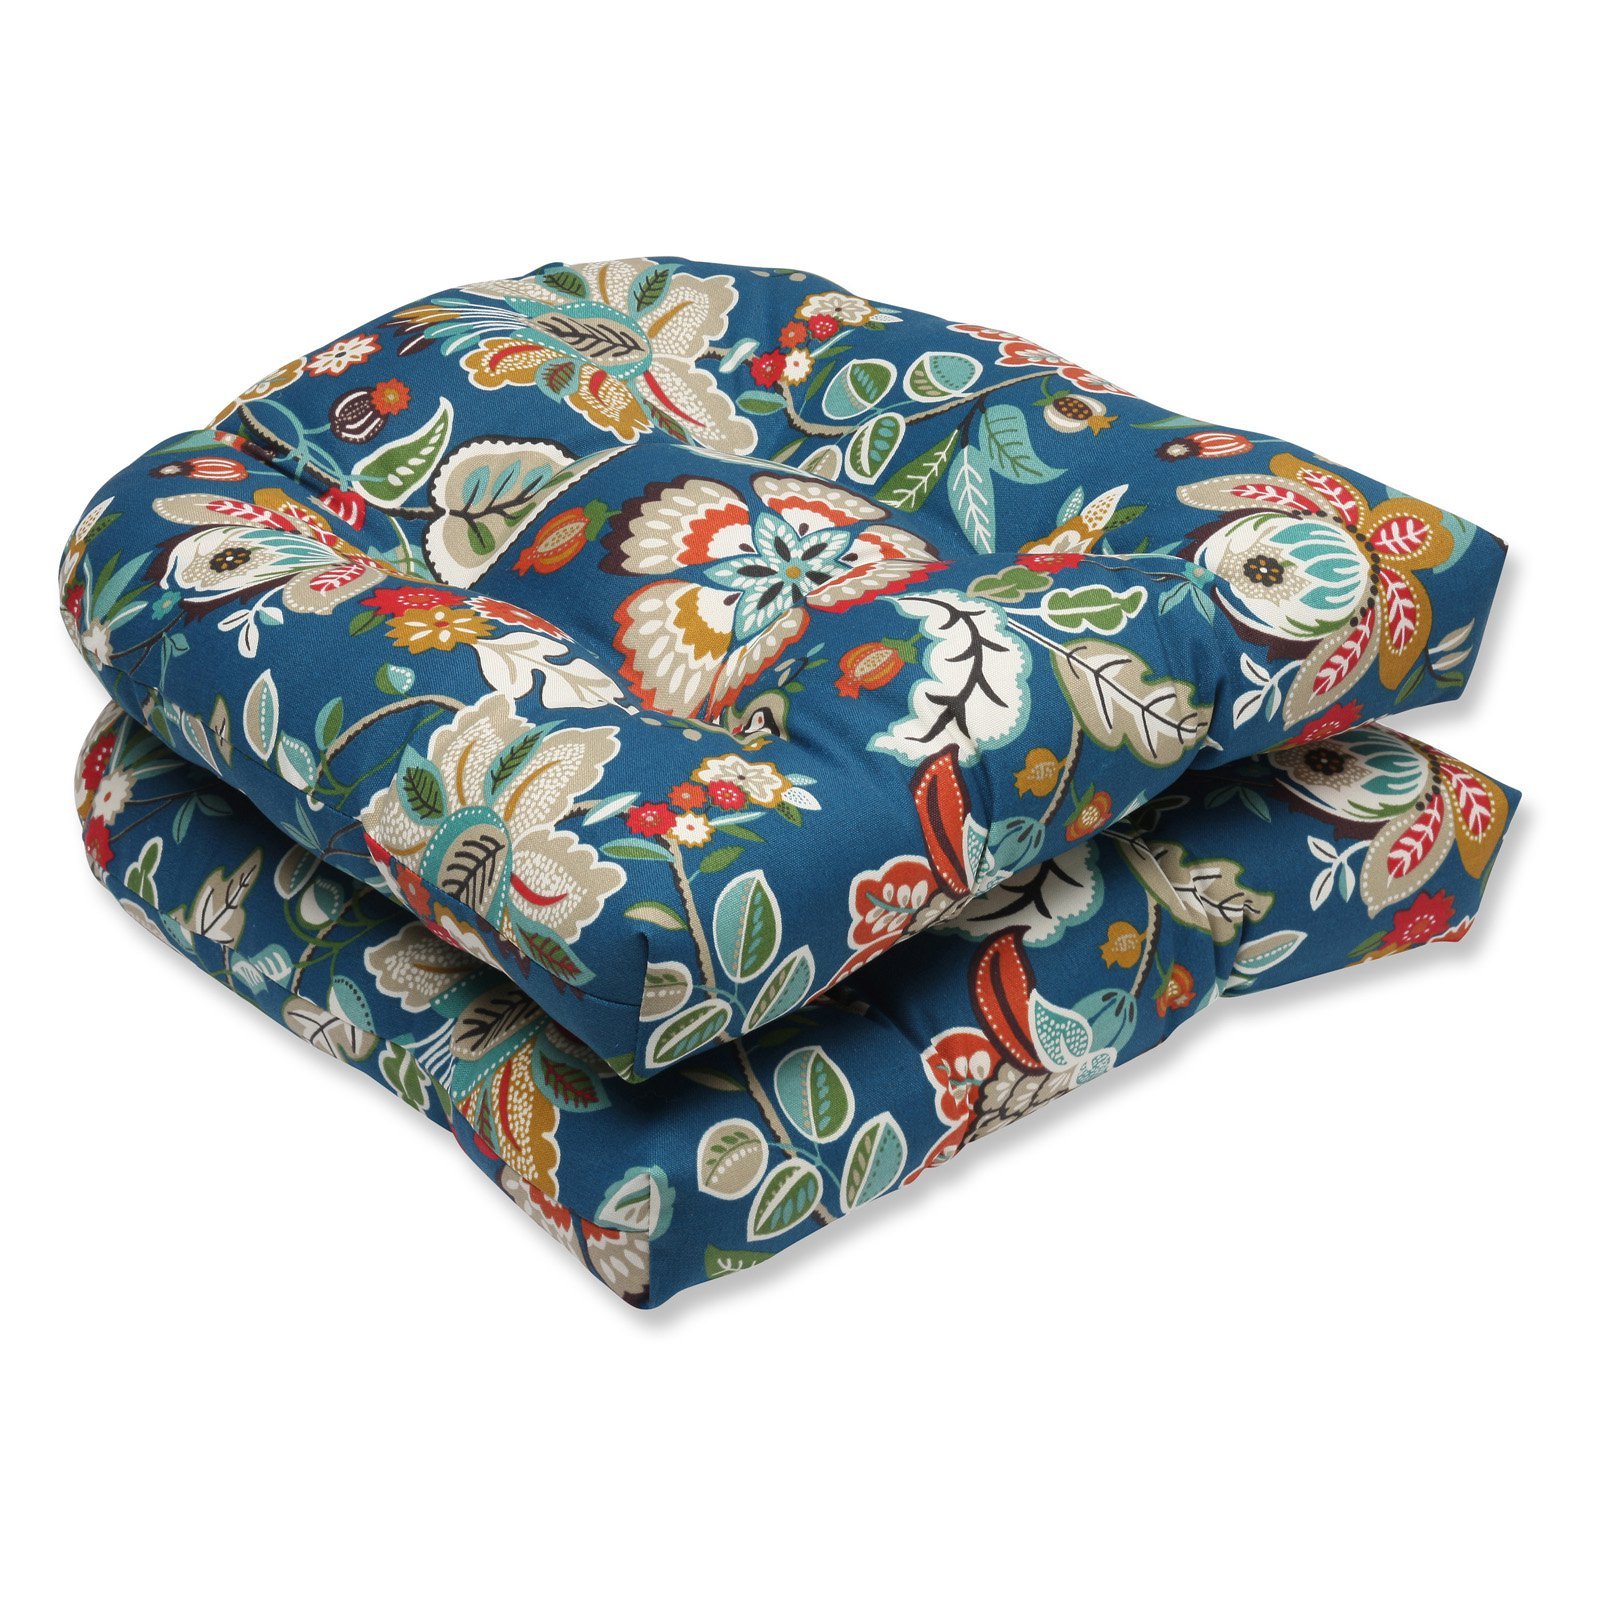 Pillow Perfect Outdoor/ Indoor Telfair Peacock Wicker Seat Cushion (Set of 2)